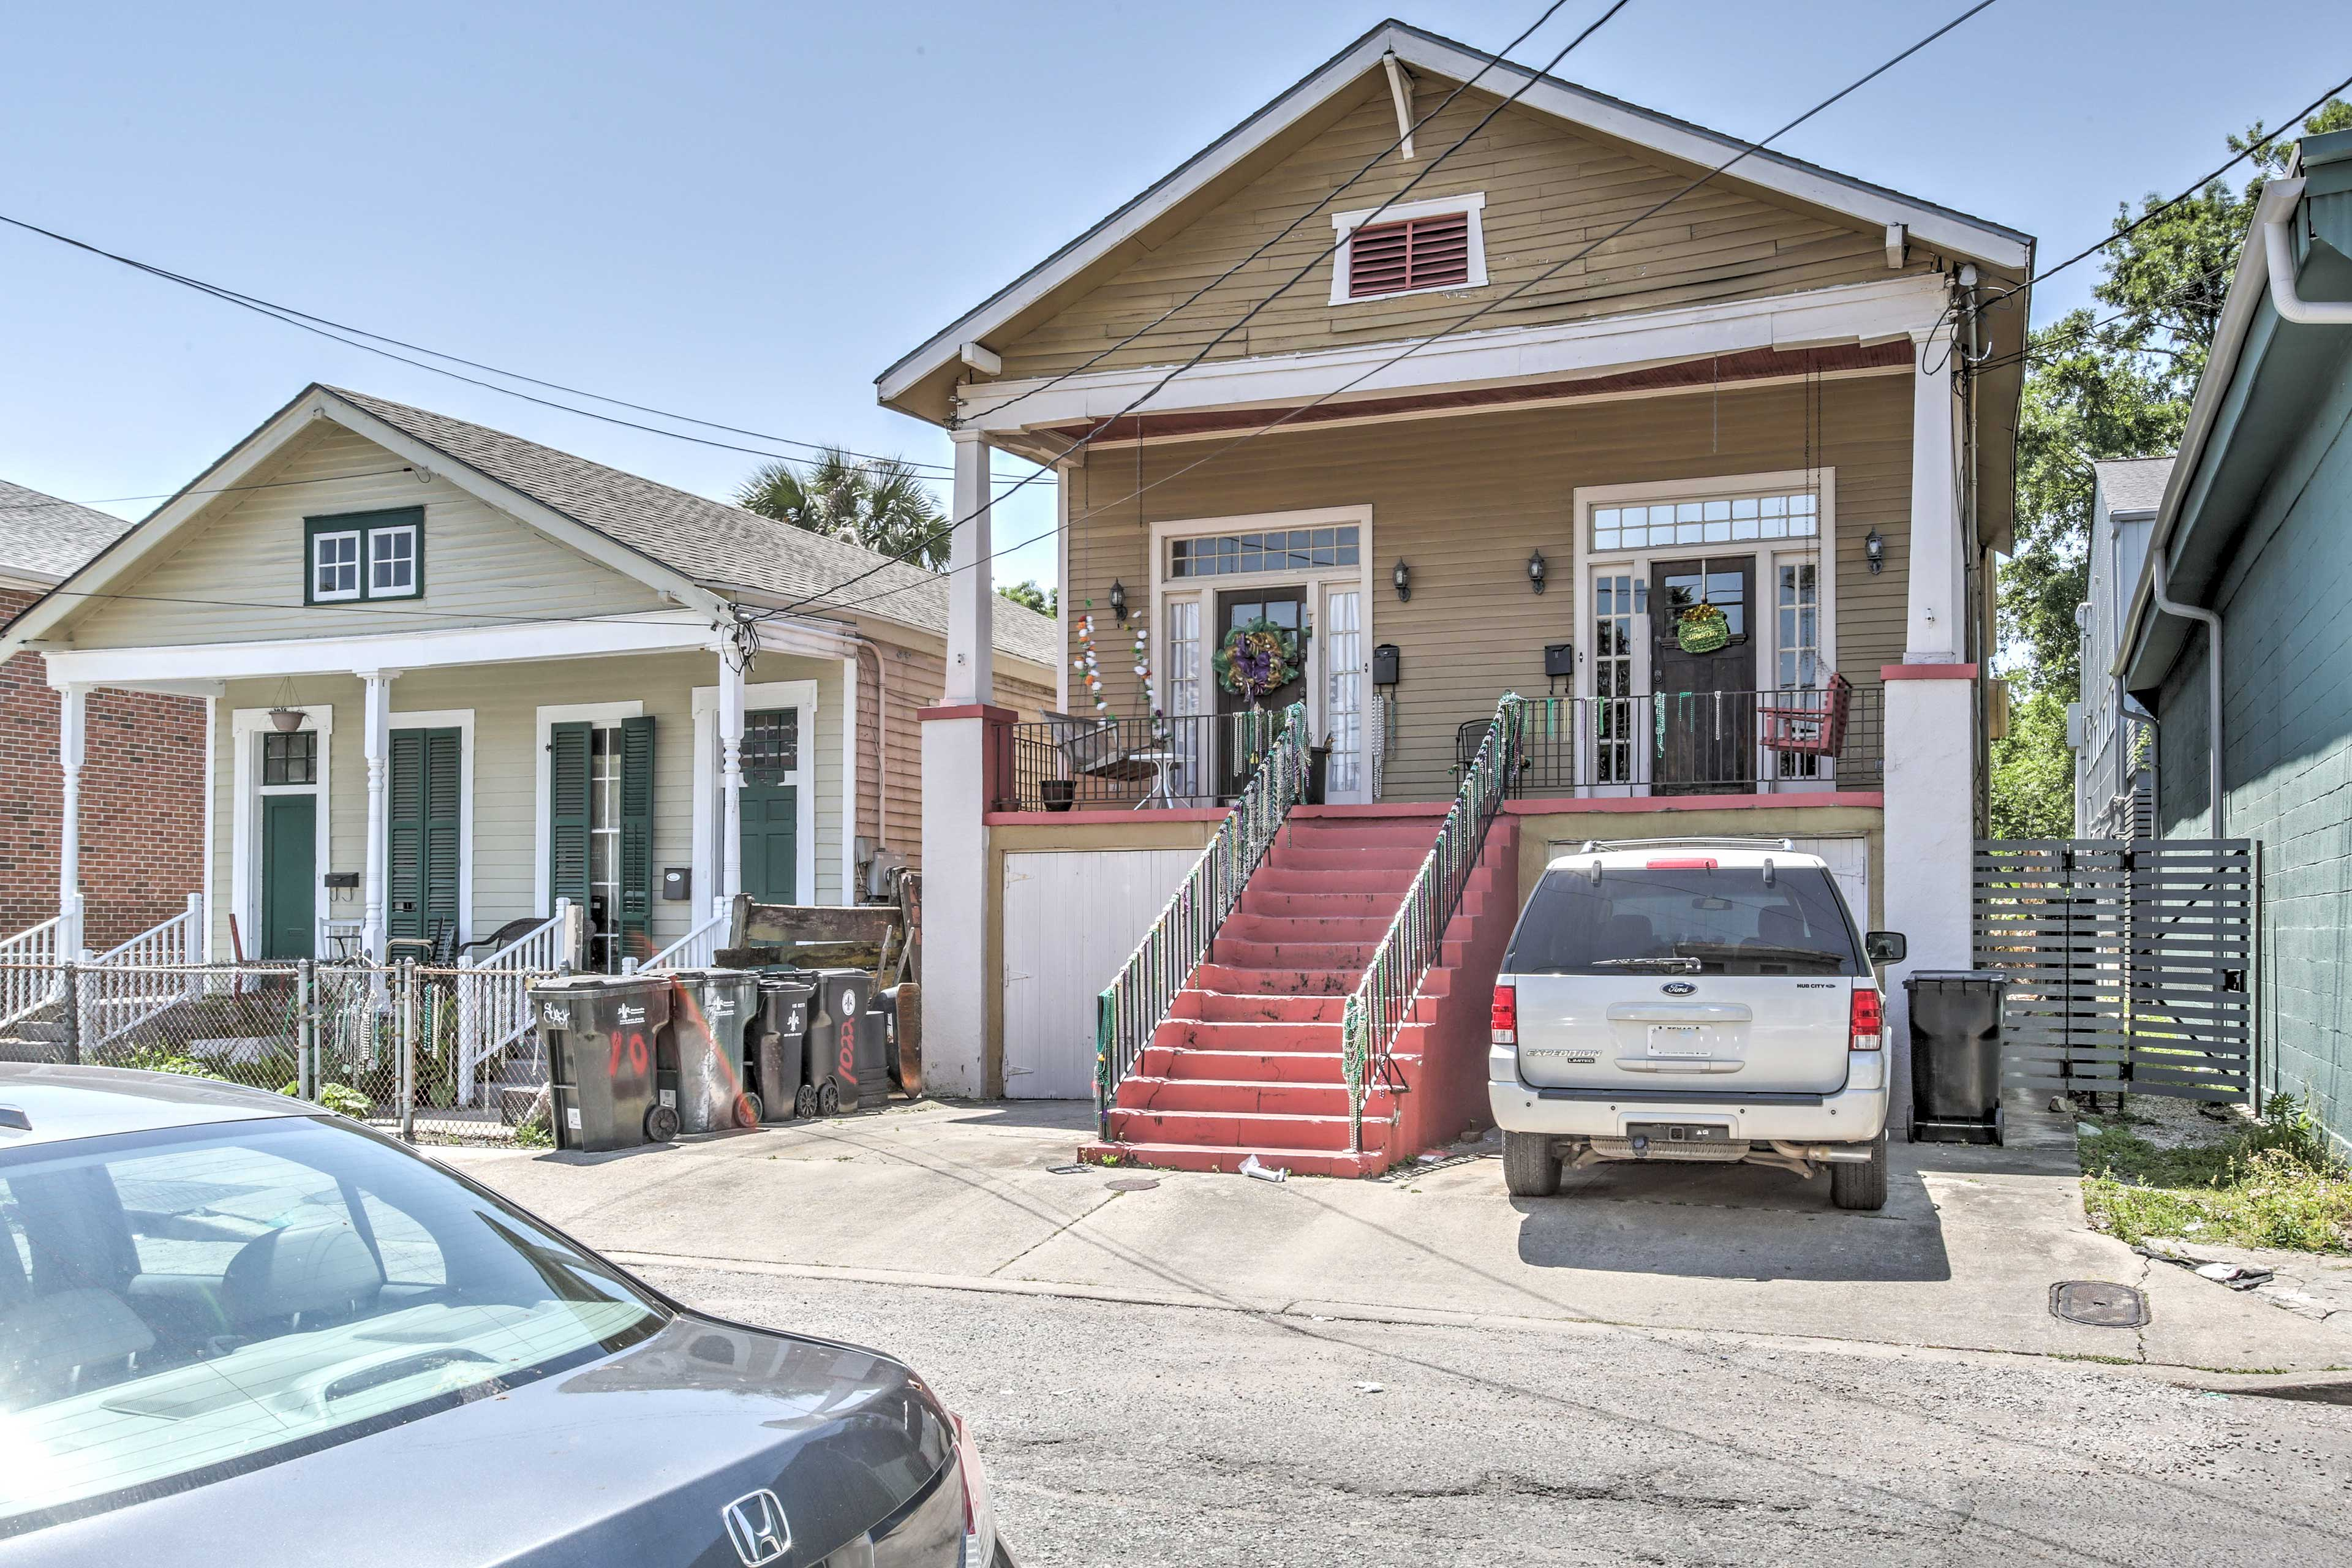 Set in the Garden District, this house is surrounded by historic charm.